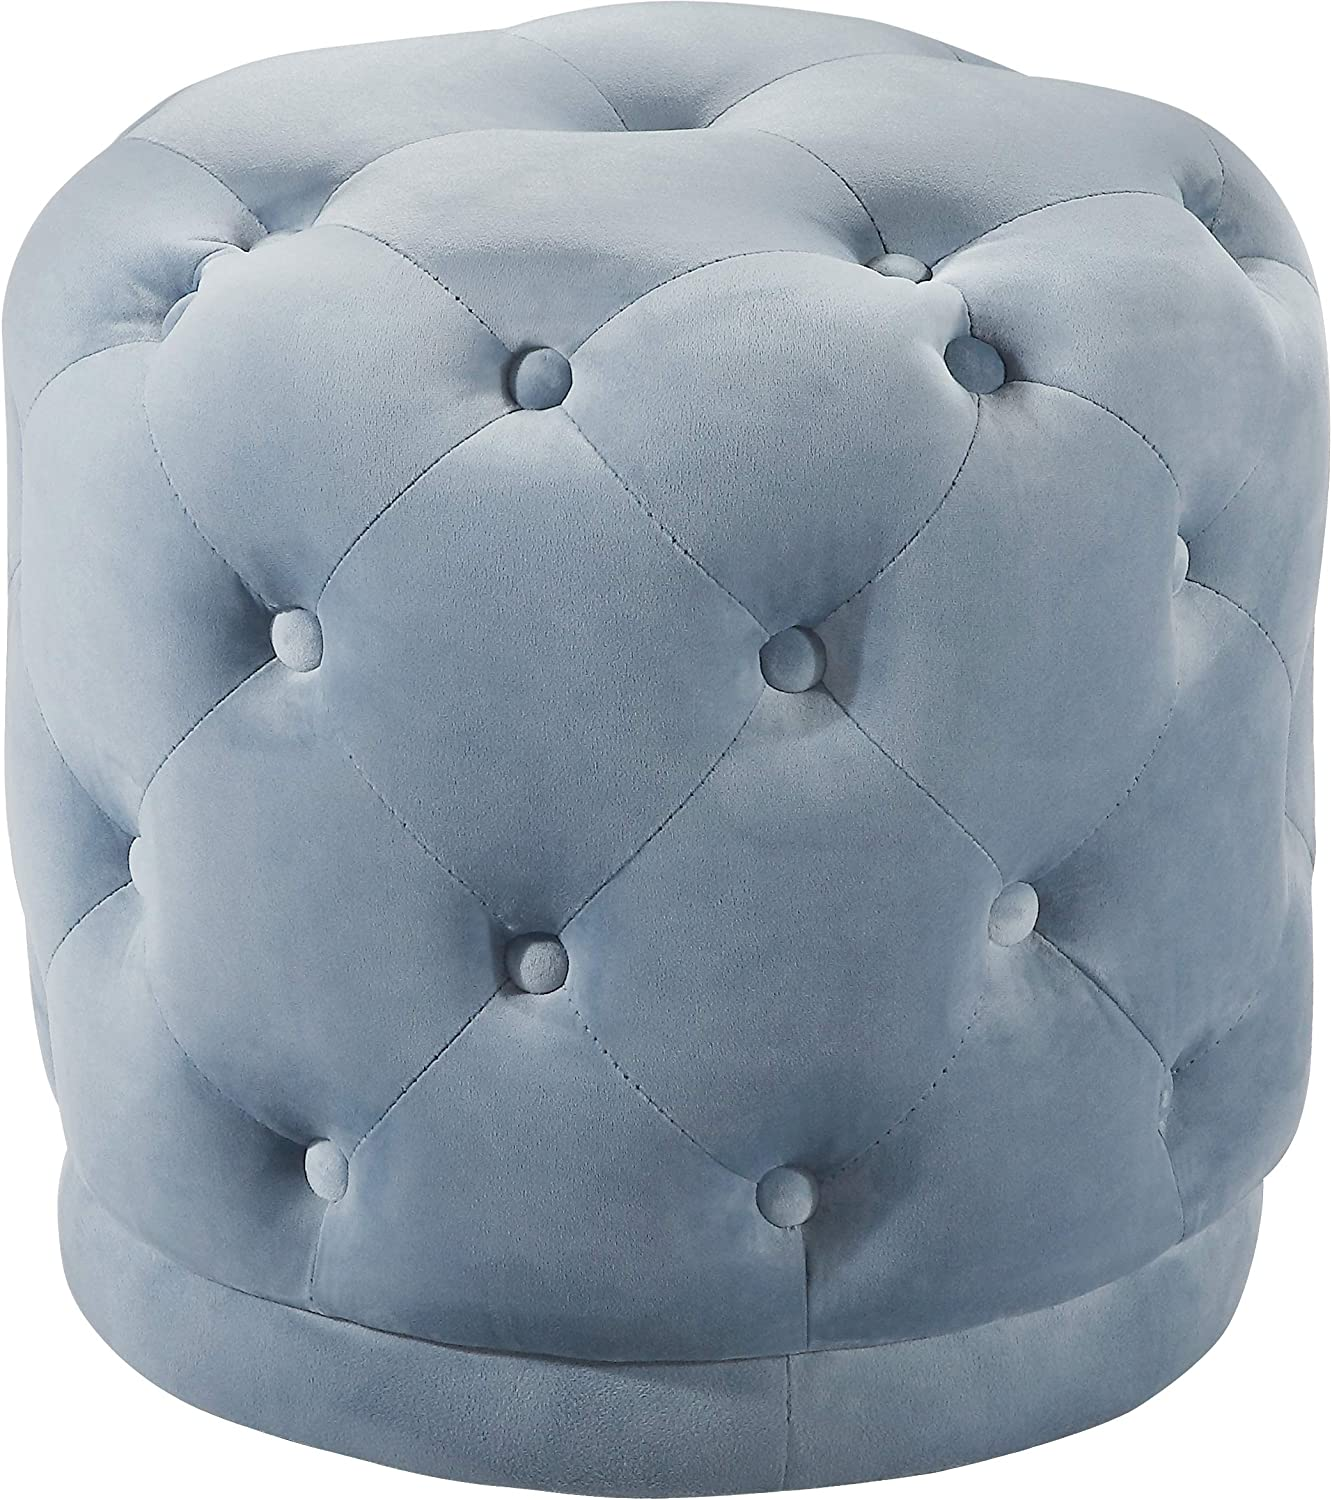 Meridian Furniture Harper Collection Modern | Contemporary Velvet Upholstered Ottoman / Stool with Deep Button Tufting, Solid Wood Frame, Sky Blue, 18